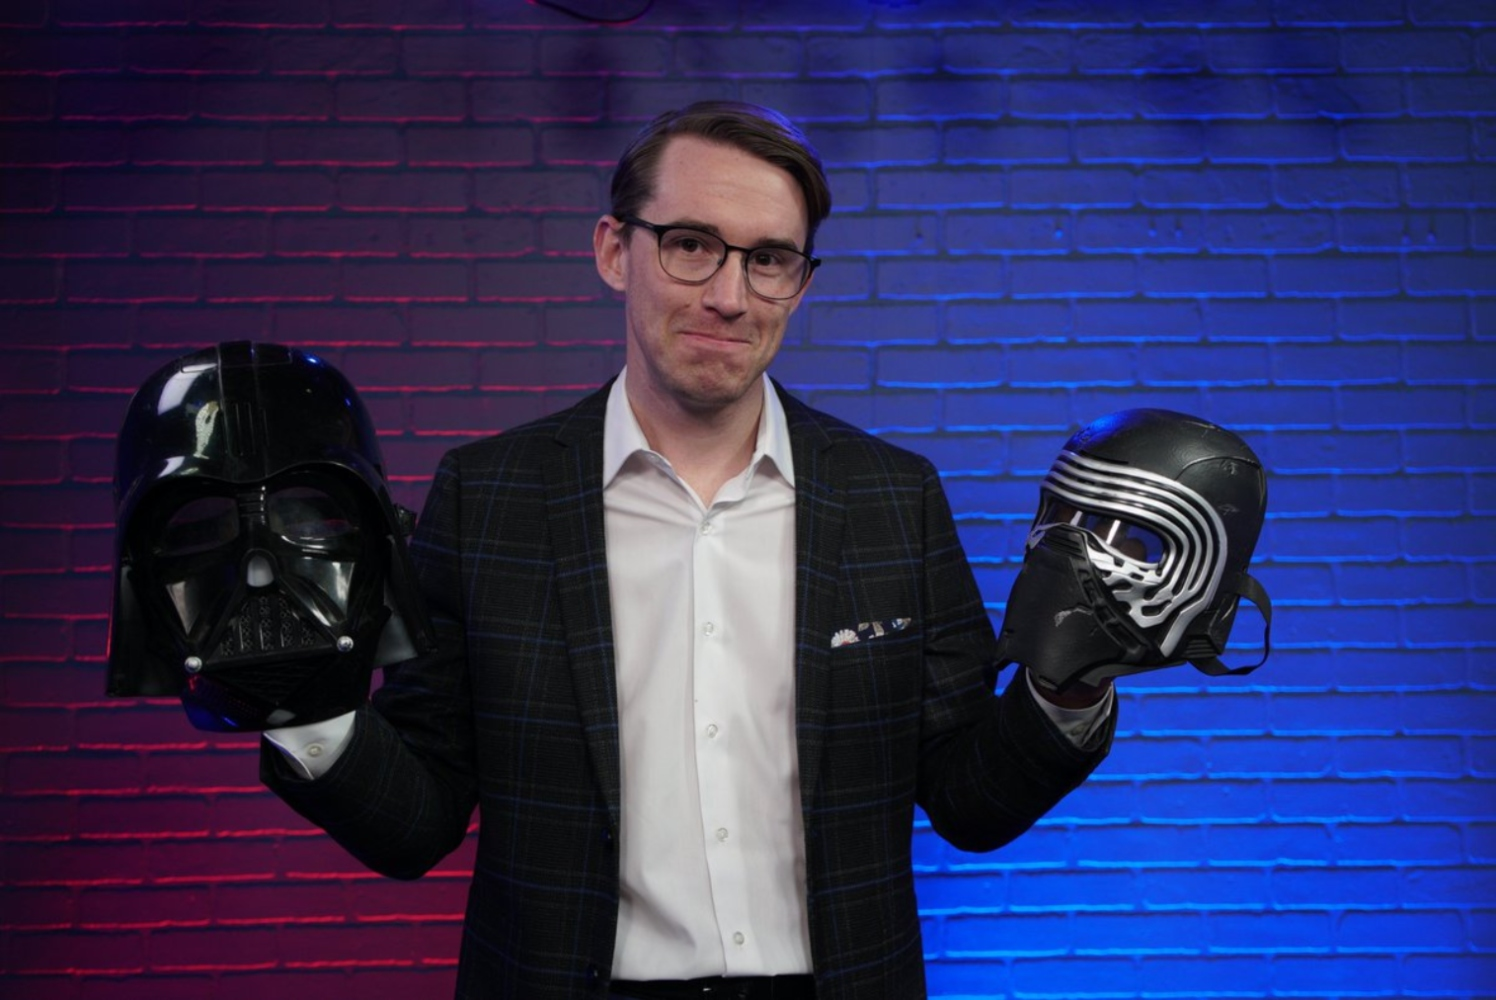 Stephen Kent thinks 'Star Wars' can save our republic